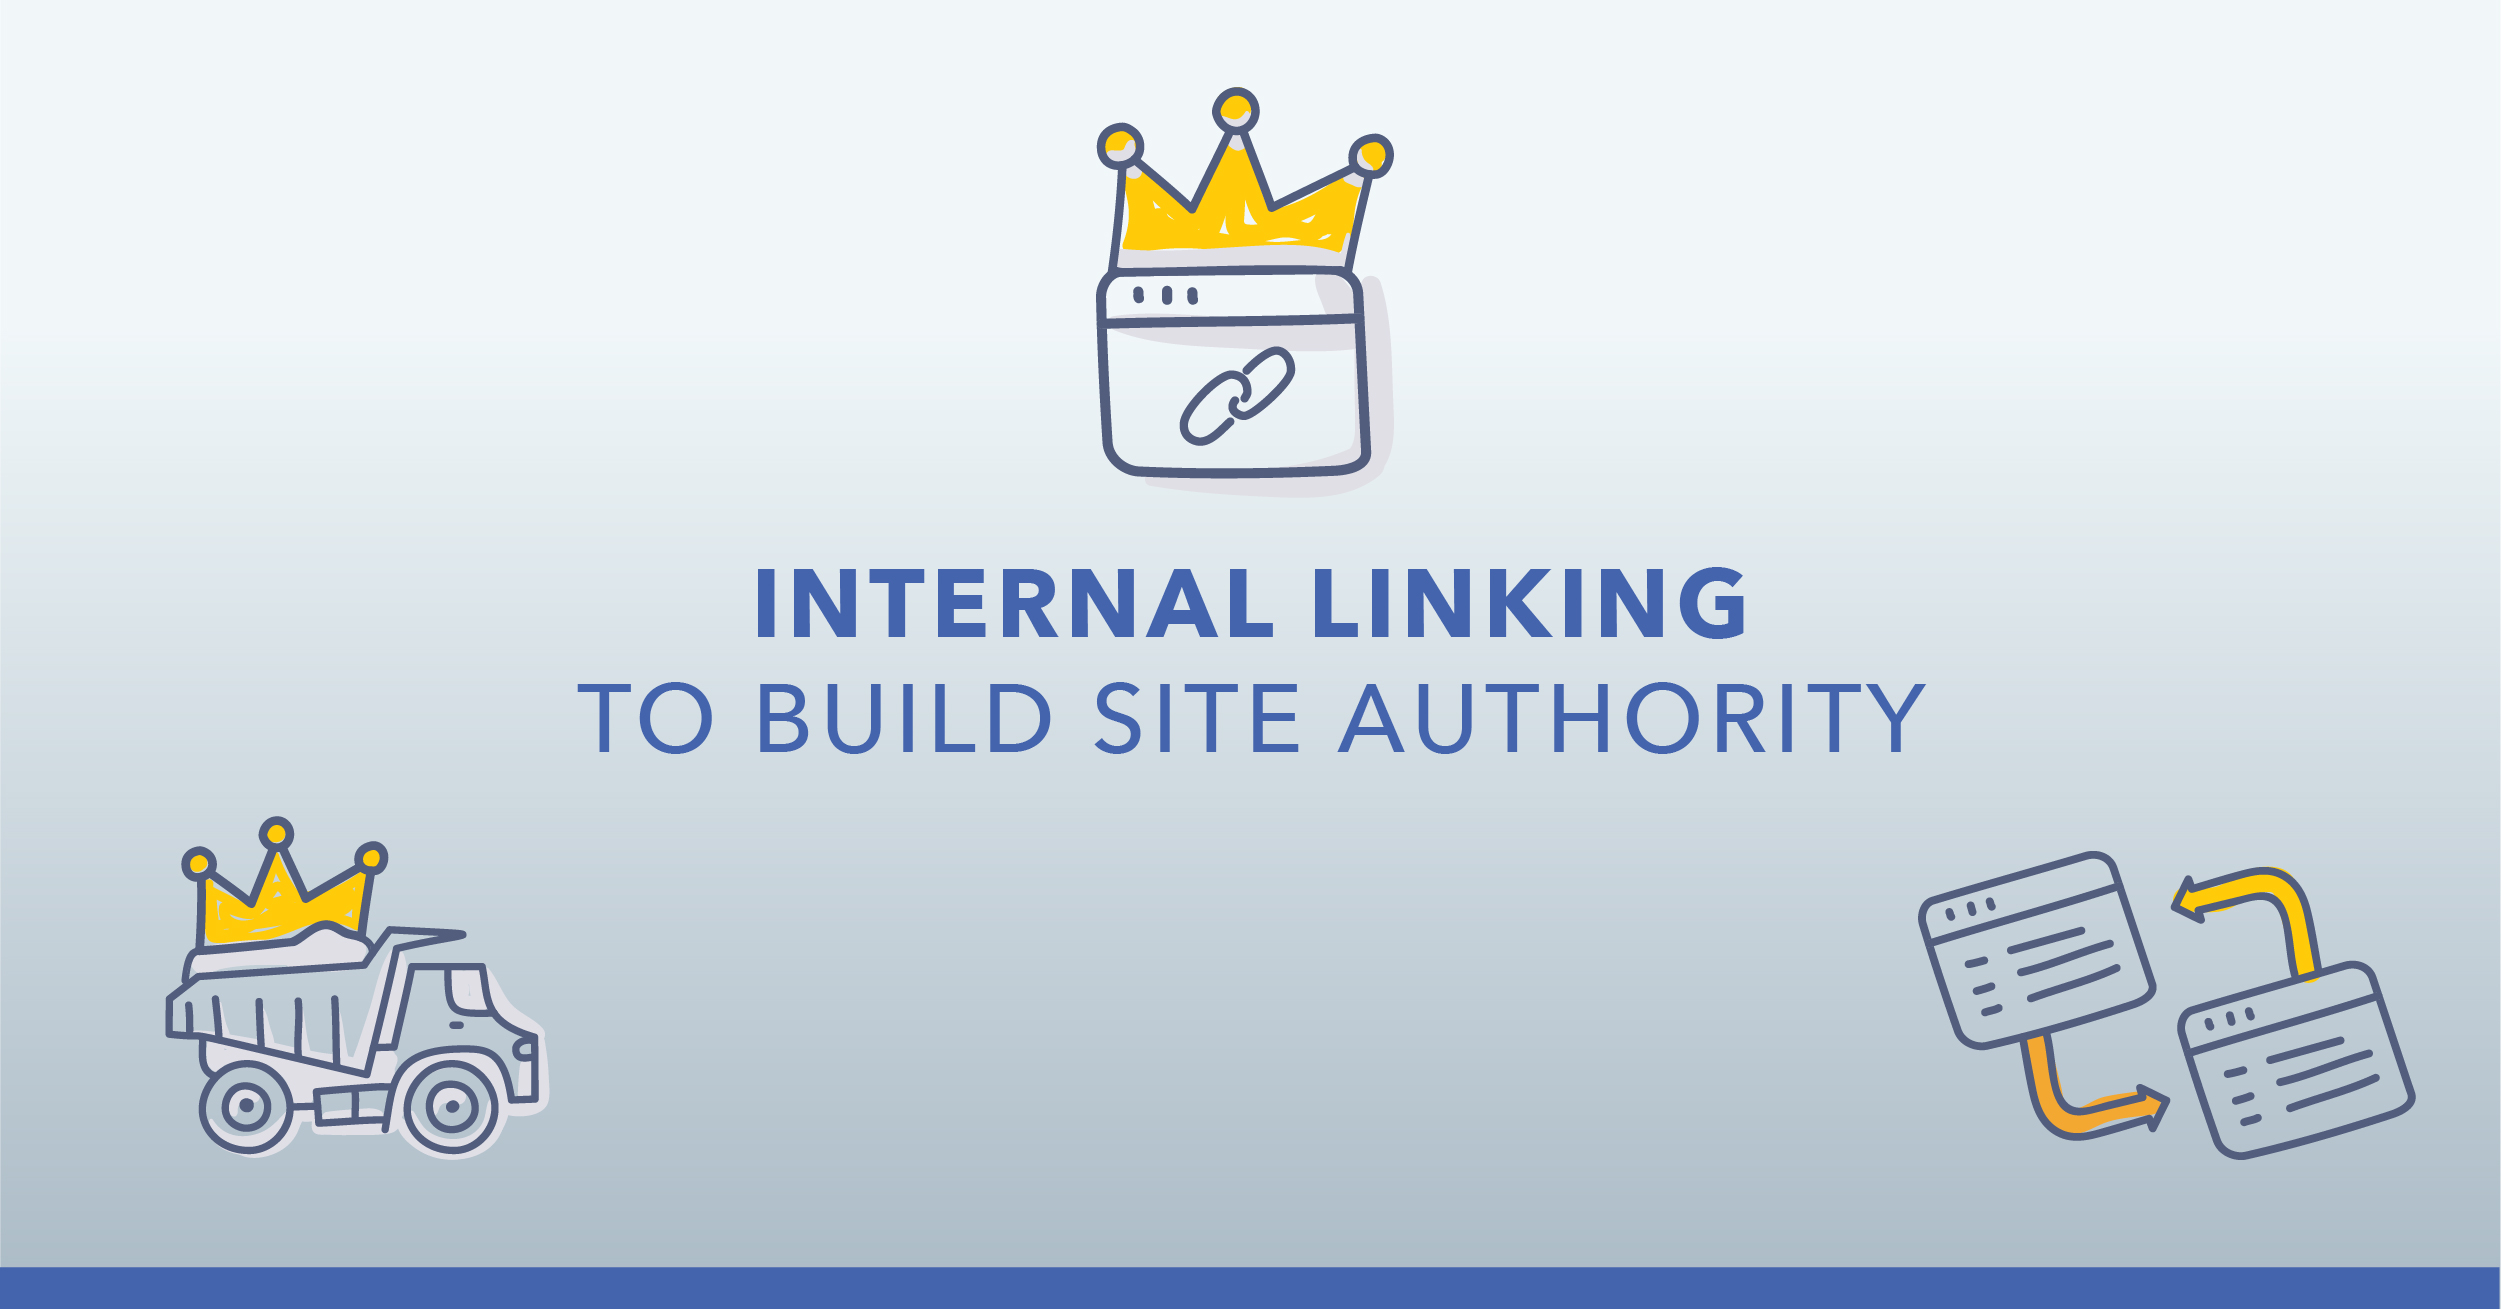 Internal Linking Strategies to Build Site Authority